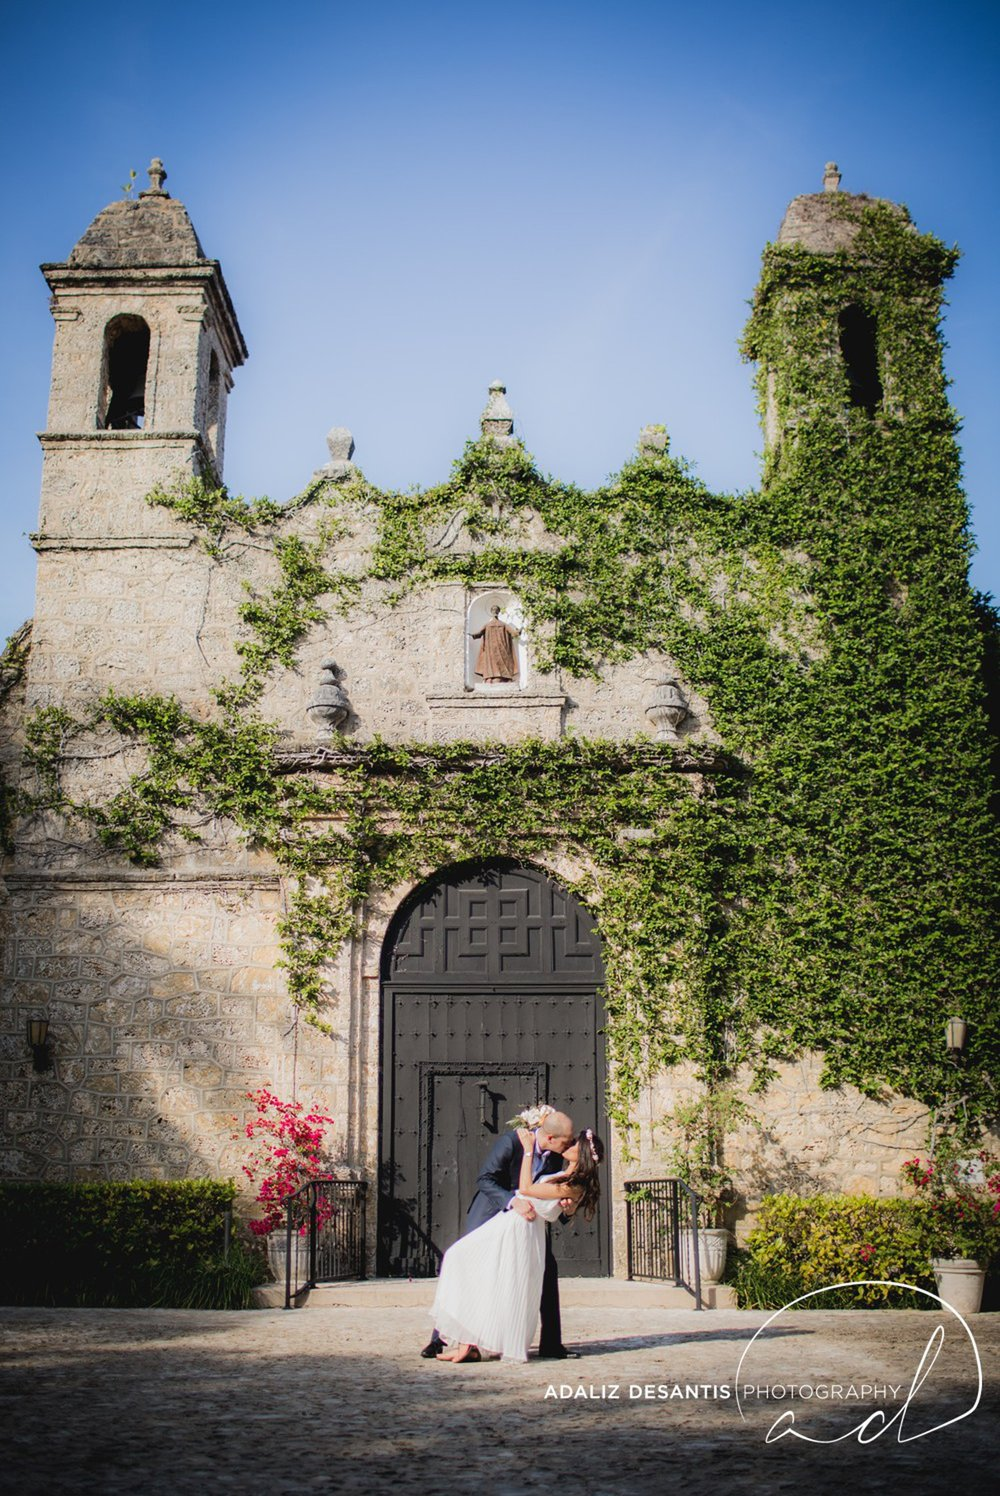 plymouth-congregational-church-coconut-grove-miami-elopement-matrimonio-civil-coral-gables 21.jpg